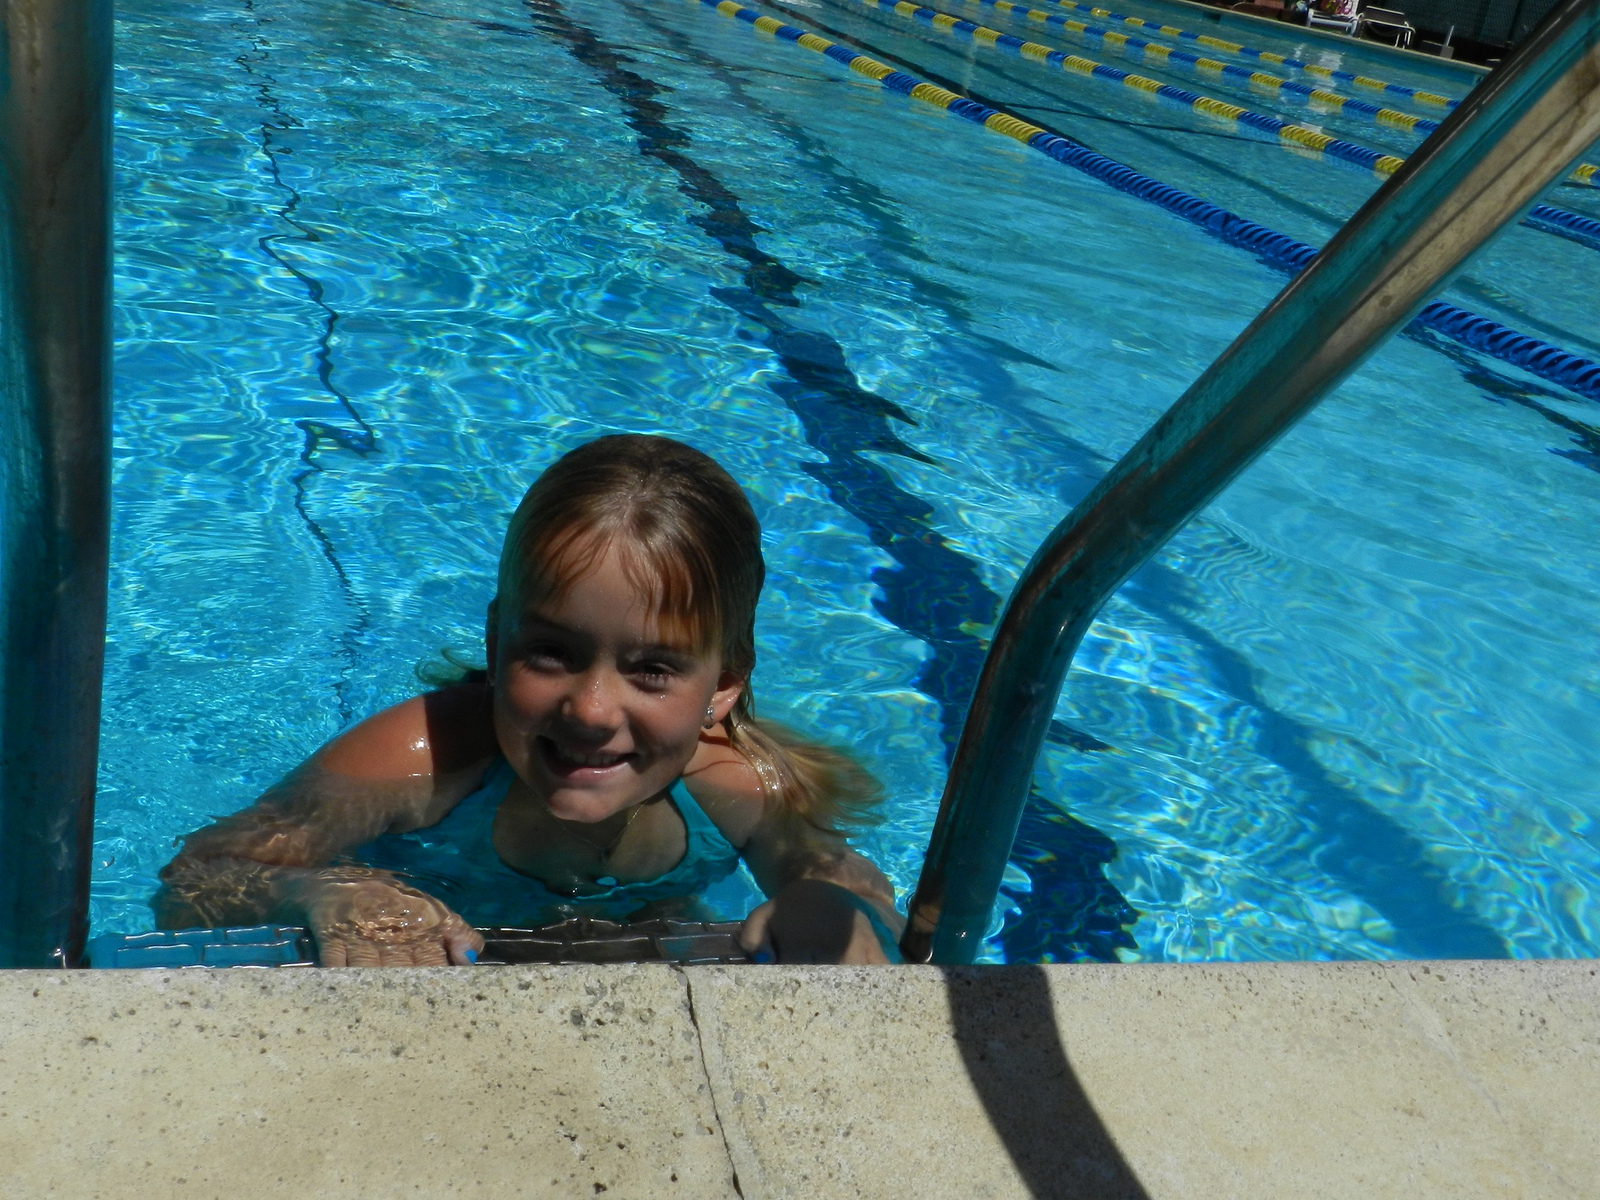 Swimming at the Canon Club in Fairfax